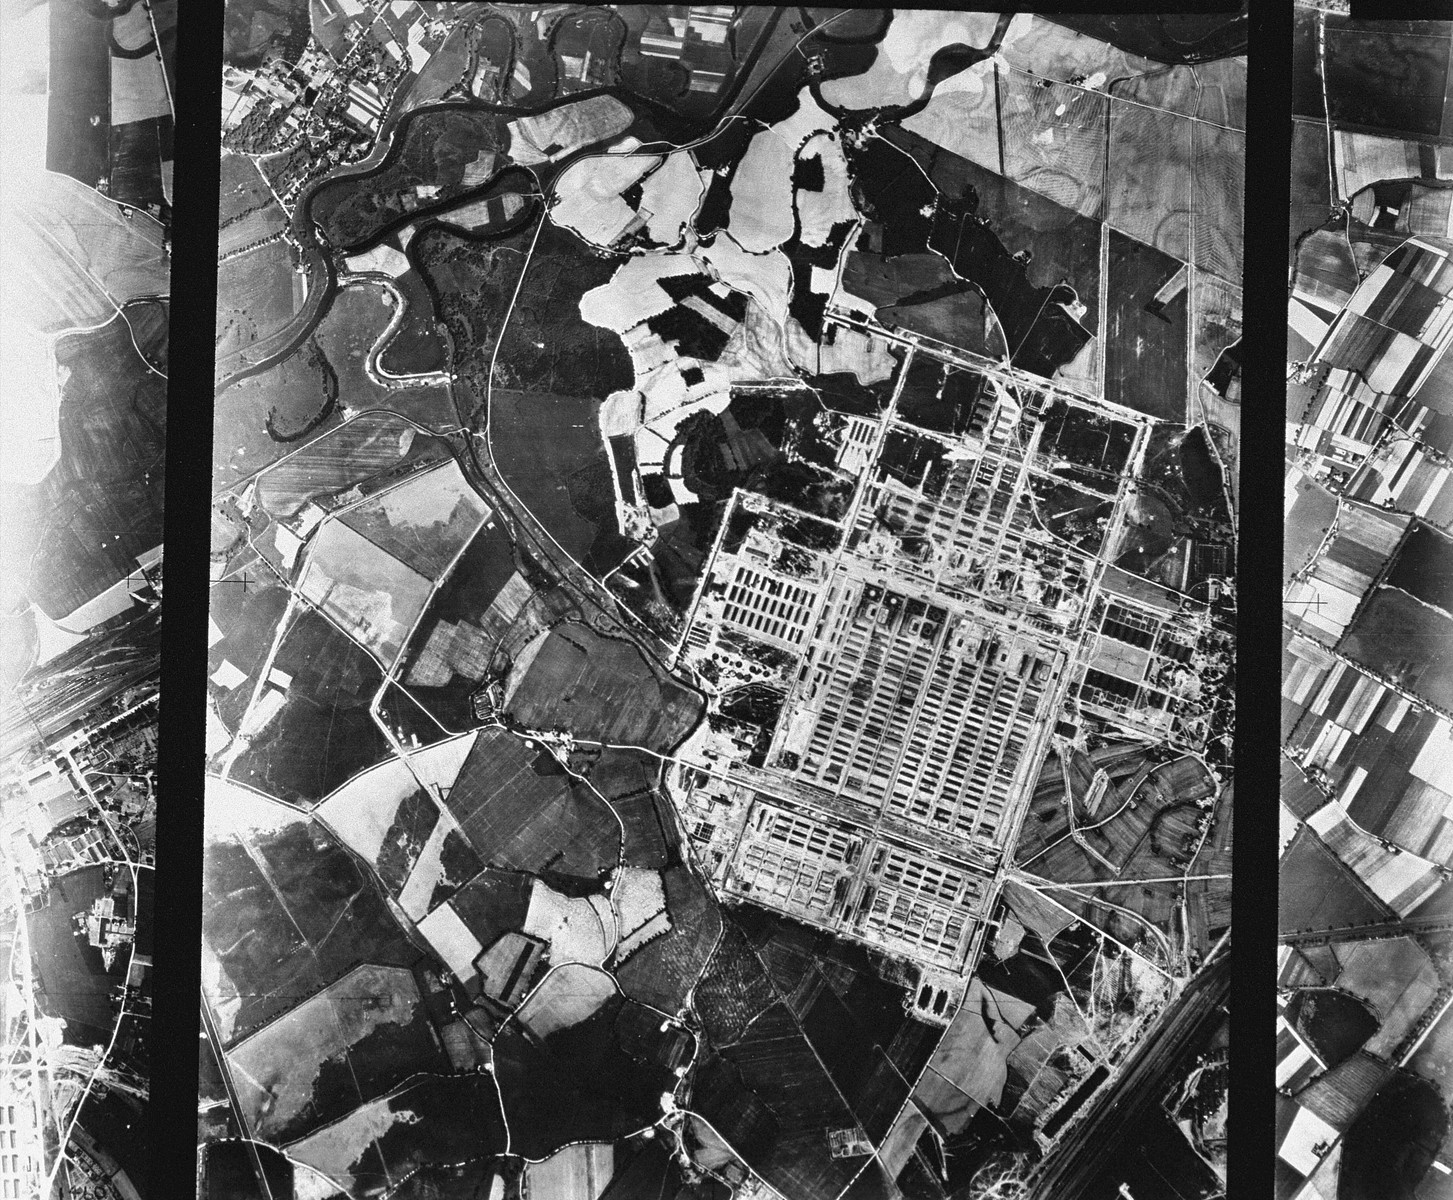 "An aerial reconnaissance photograph showing Auschwitz II (Birkenau). [oversized photograph]  Mission:  60 PRS/462 60 SQ;  Scale: 1/54,000;  Focal Length: 6"";  Altitude: 27,000'"